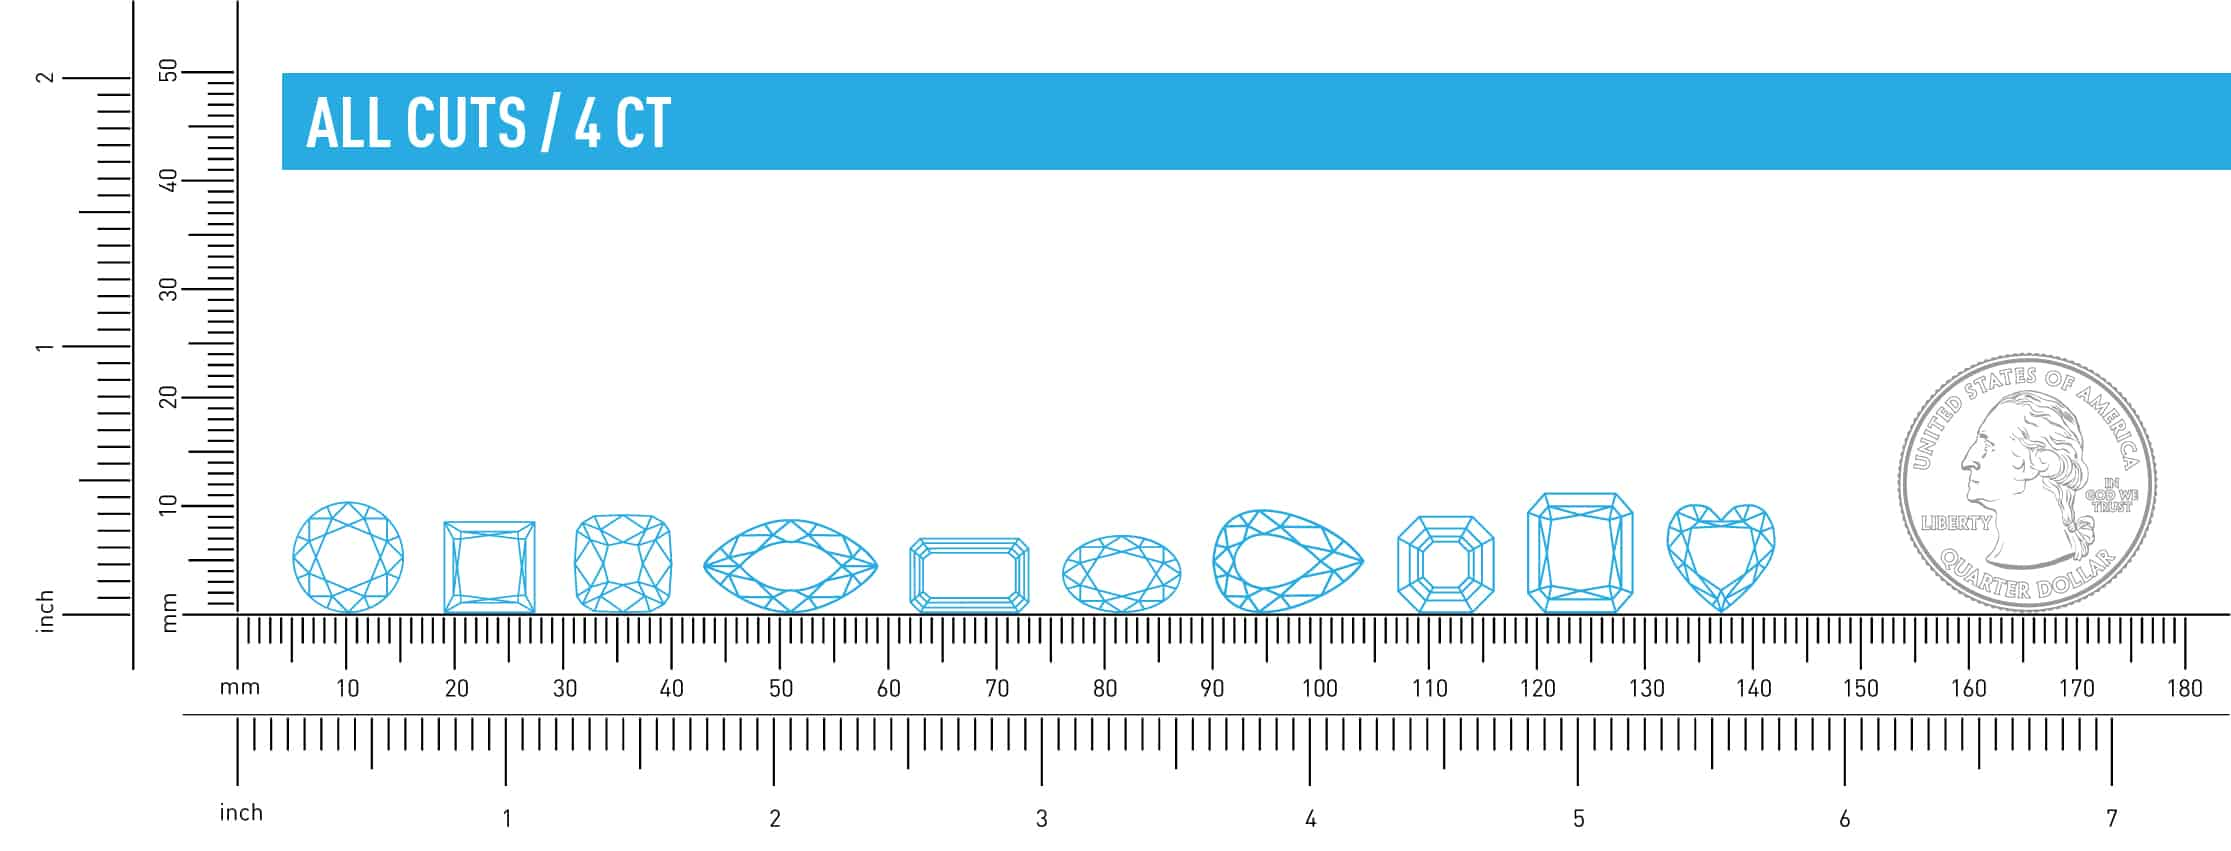 All cuts size comparison 4ct